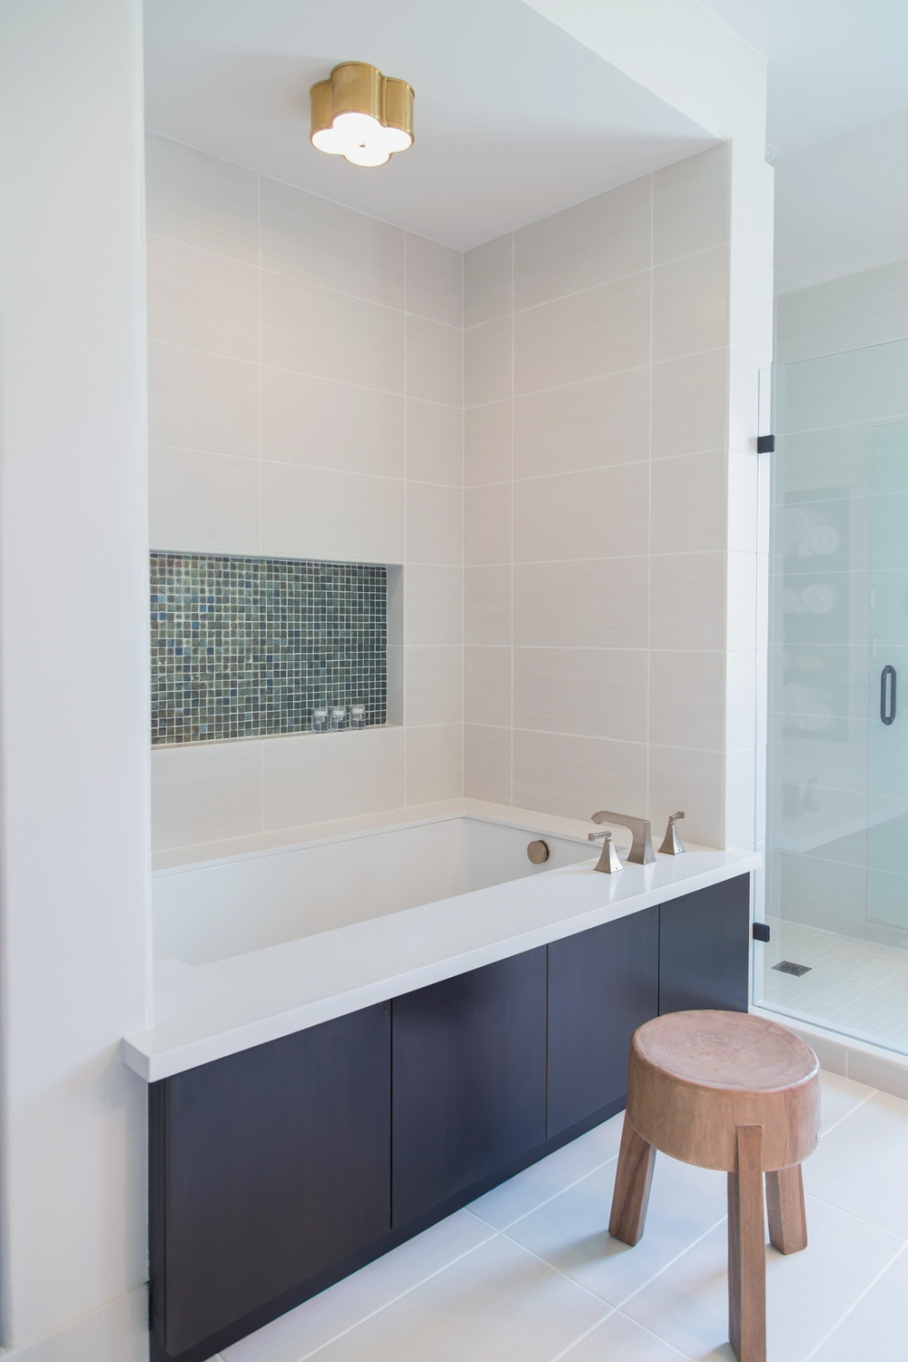 Bathroom remodel; bathtub; shower; tile; fixture; flooring | Interior designer: Carla Aston / Photographer: Tori Aston